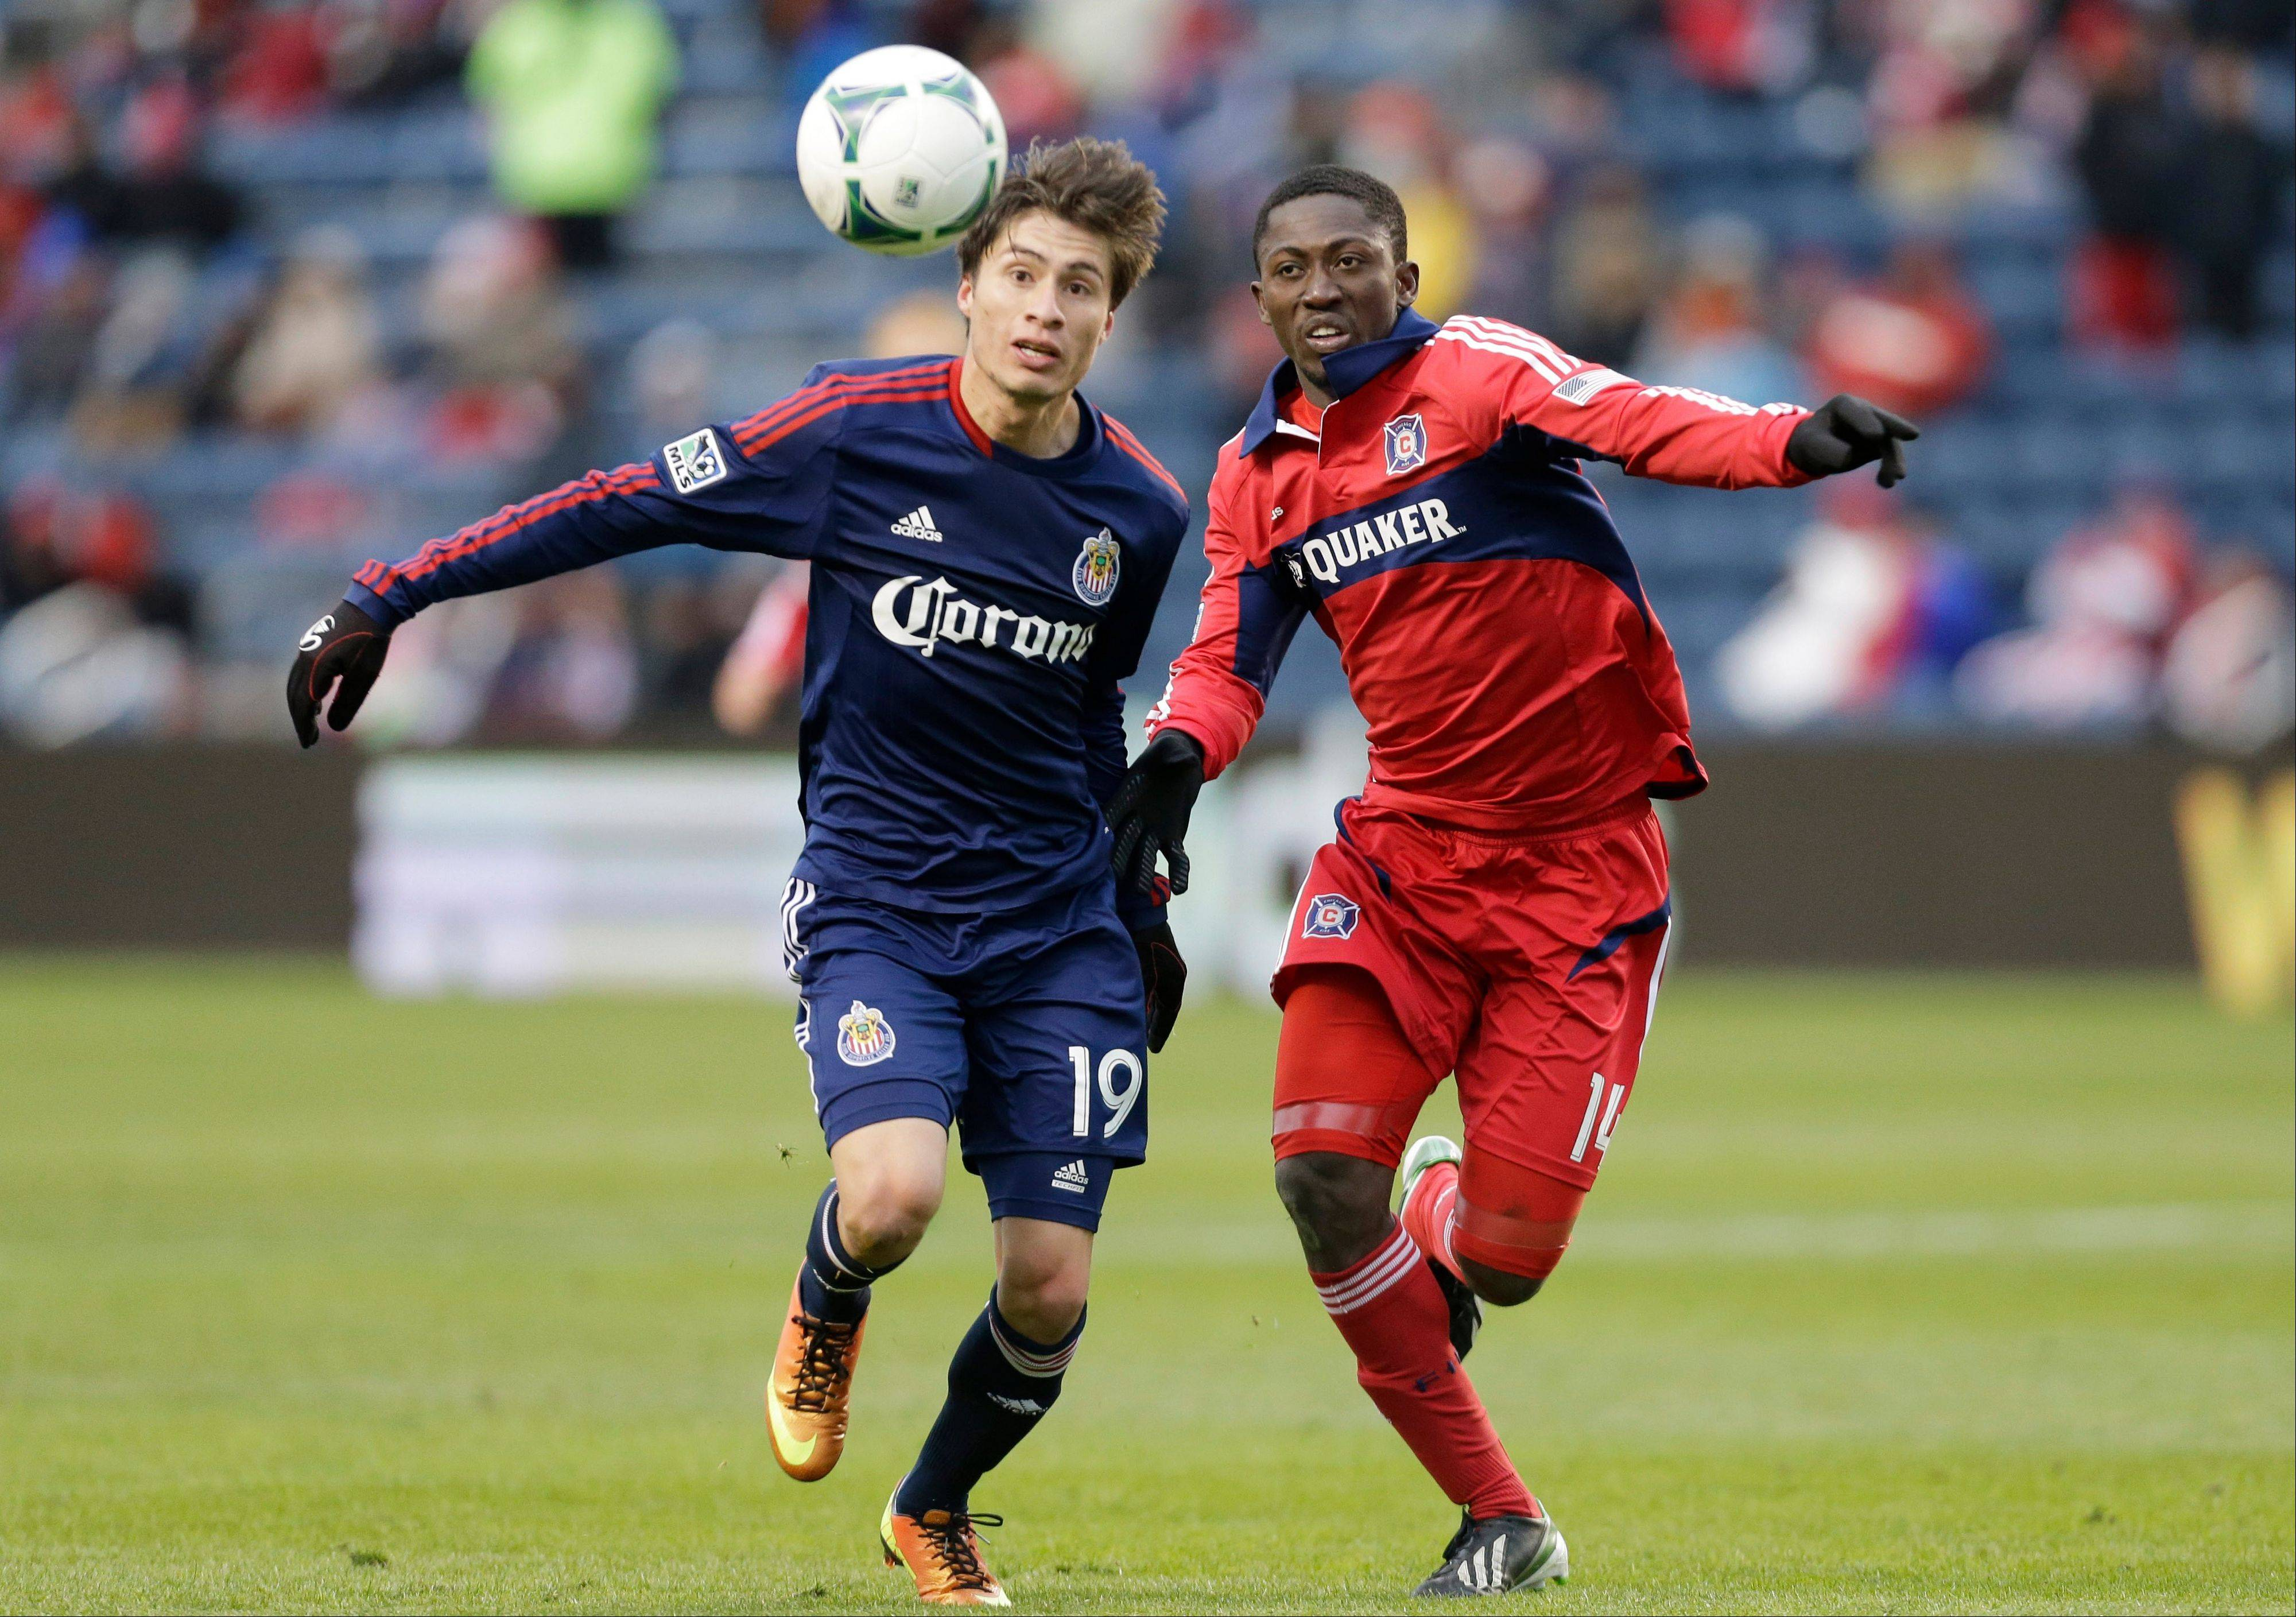 Chivas USA forward Jorge Villafana, left, and Chicago Fire forward Patrick Nyarko, right, chase the ball during the second half of an MLS soccer match in Bridgeview, Ill., Sunday, March 24, 2013. Chivas USA won 4-1.